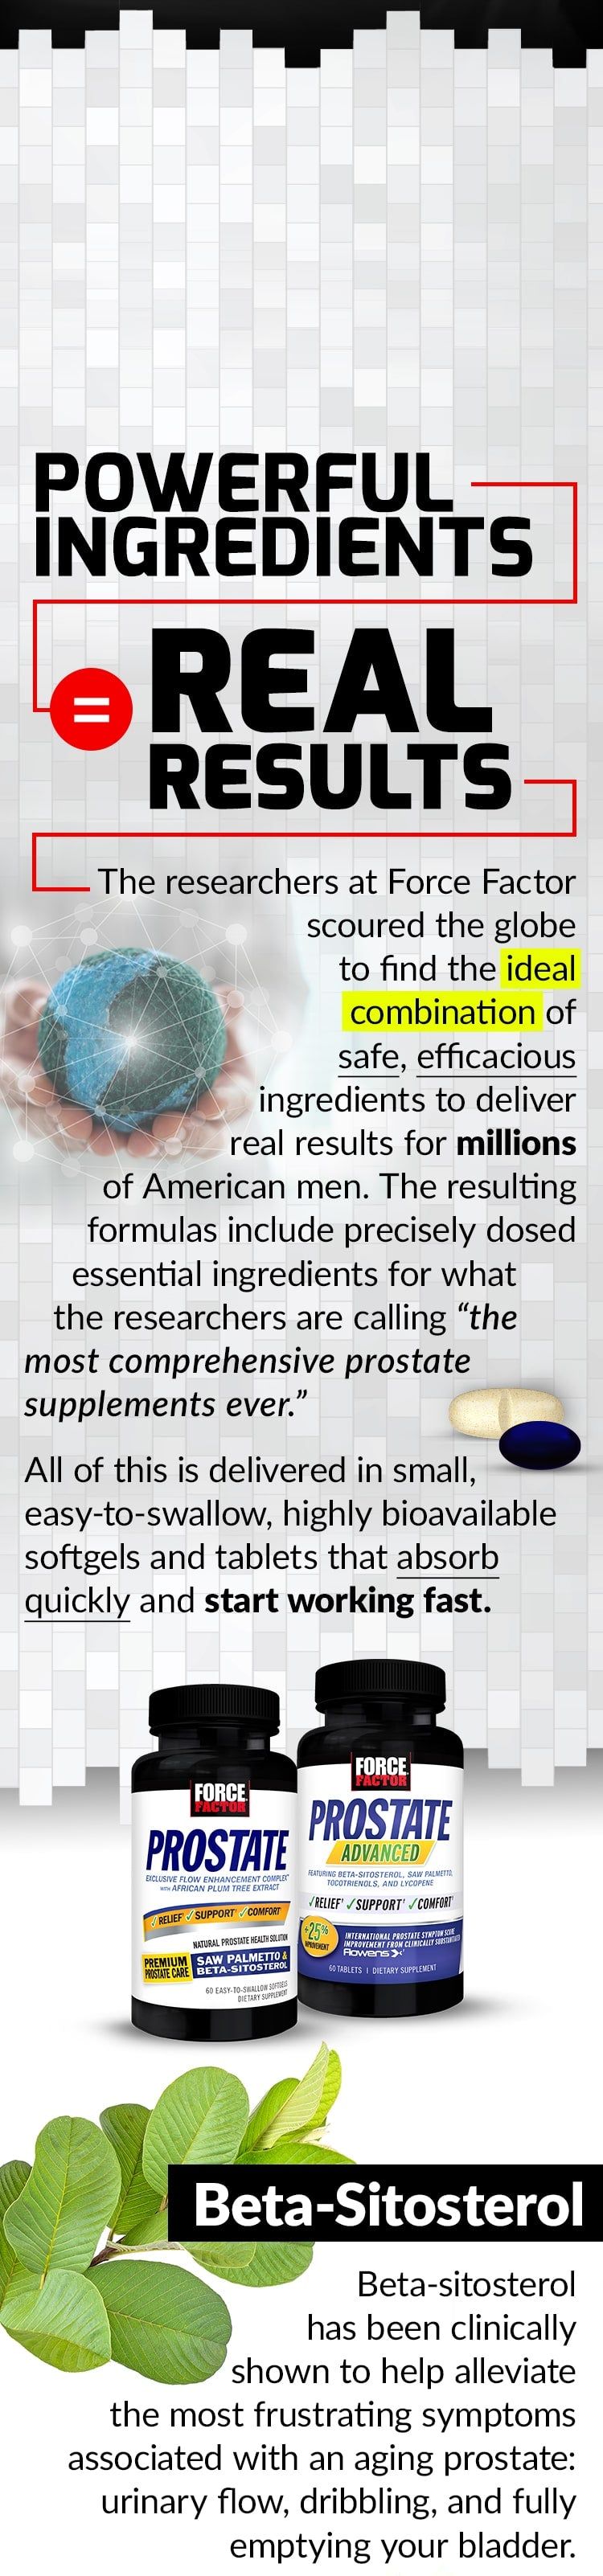 "POWERFUL INGREDIENTS = REAL RESULTS. The researchers at Force Factor scoured the globe to find the ideal combination of safe, efficacious ingredients to deliver real results for millions of American men. The resulting formulas include precisely dosed essential ingredients for what the researchers are calling ""the most comprehensive prostate supplements ever."" All of this is delivered in small, easy-to-swallow, highly bioavailable softgels and tablets that absorb quickly and start working fast. Beta-sitosterol has been clinically shown to help alleviate the most frustrating symptoms associated with an aging prostate: urinary flow, dribbling, and fully emptying your bladder."